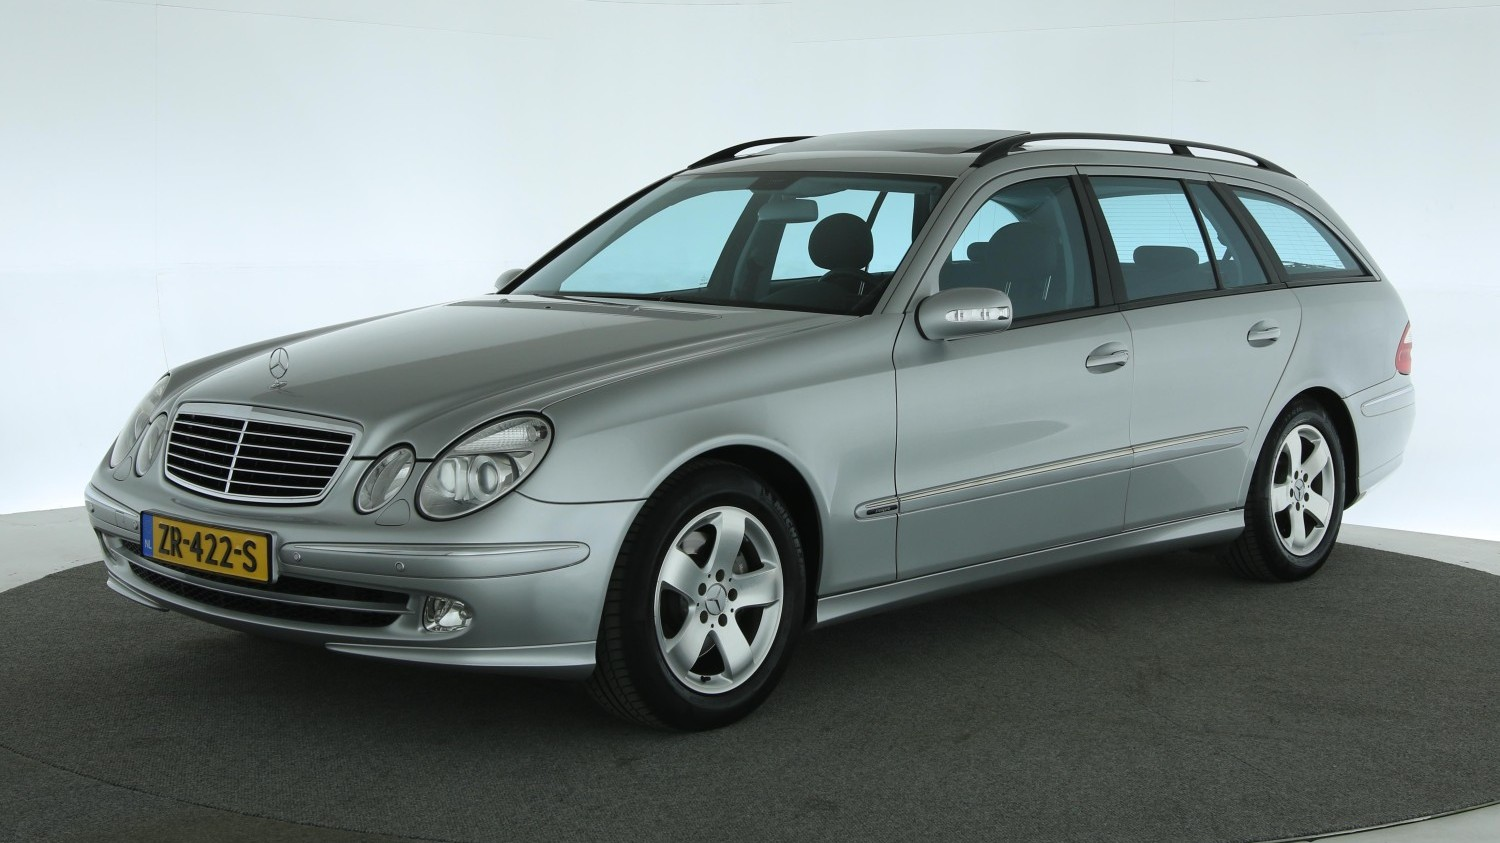 Mercedes-Benz E-Klasse Station 2003 ZR-422-S 1